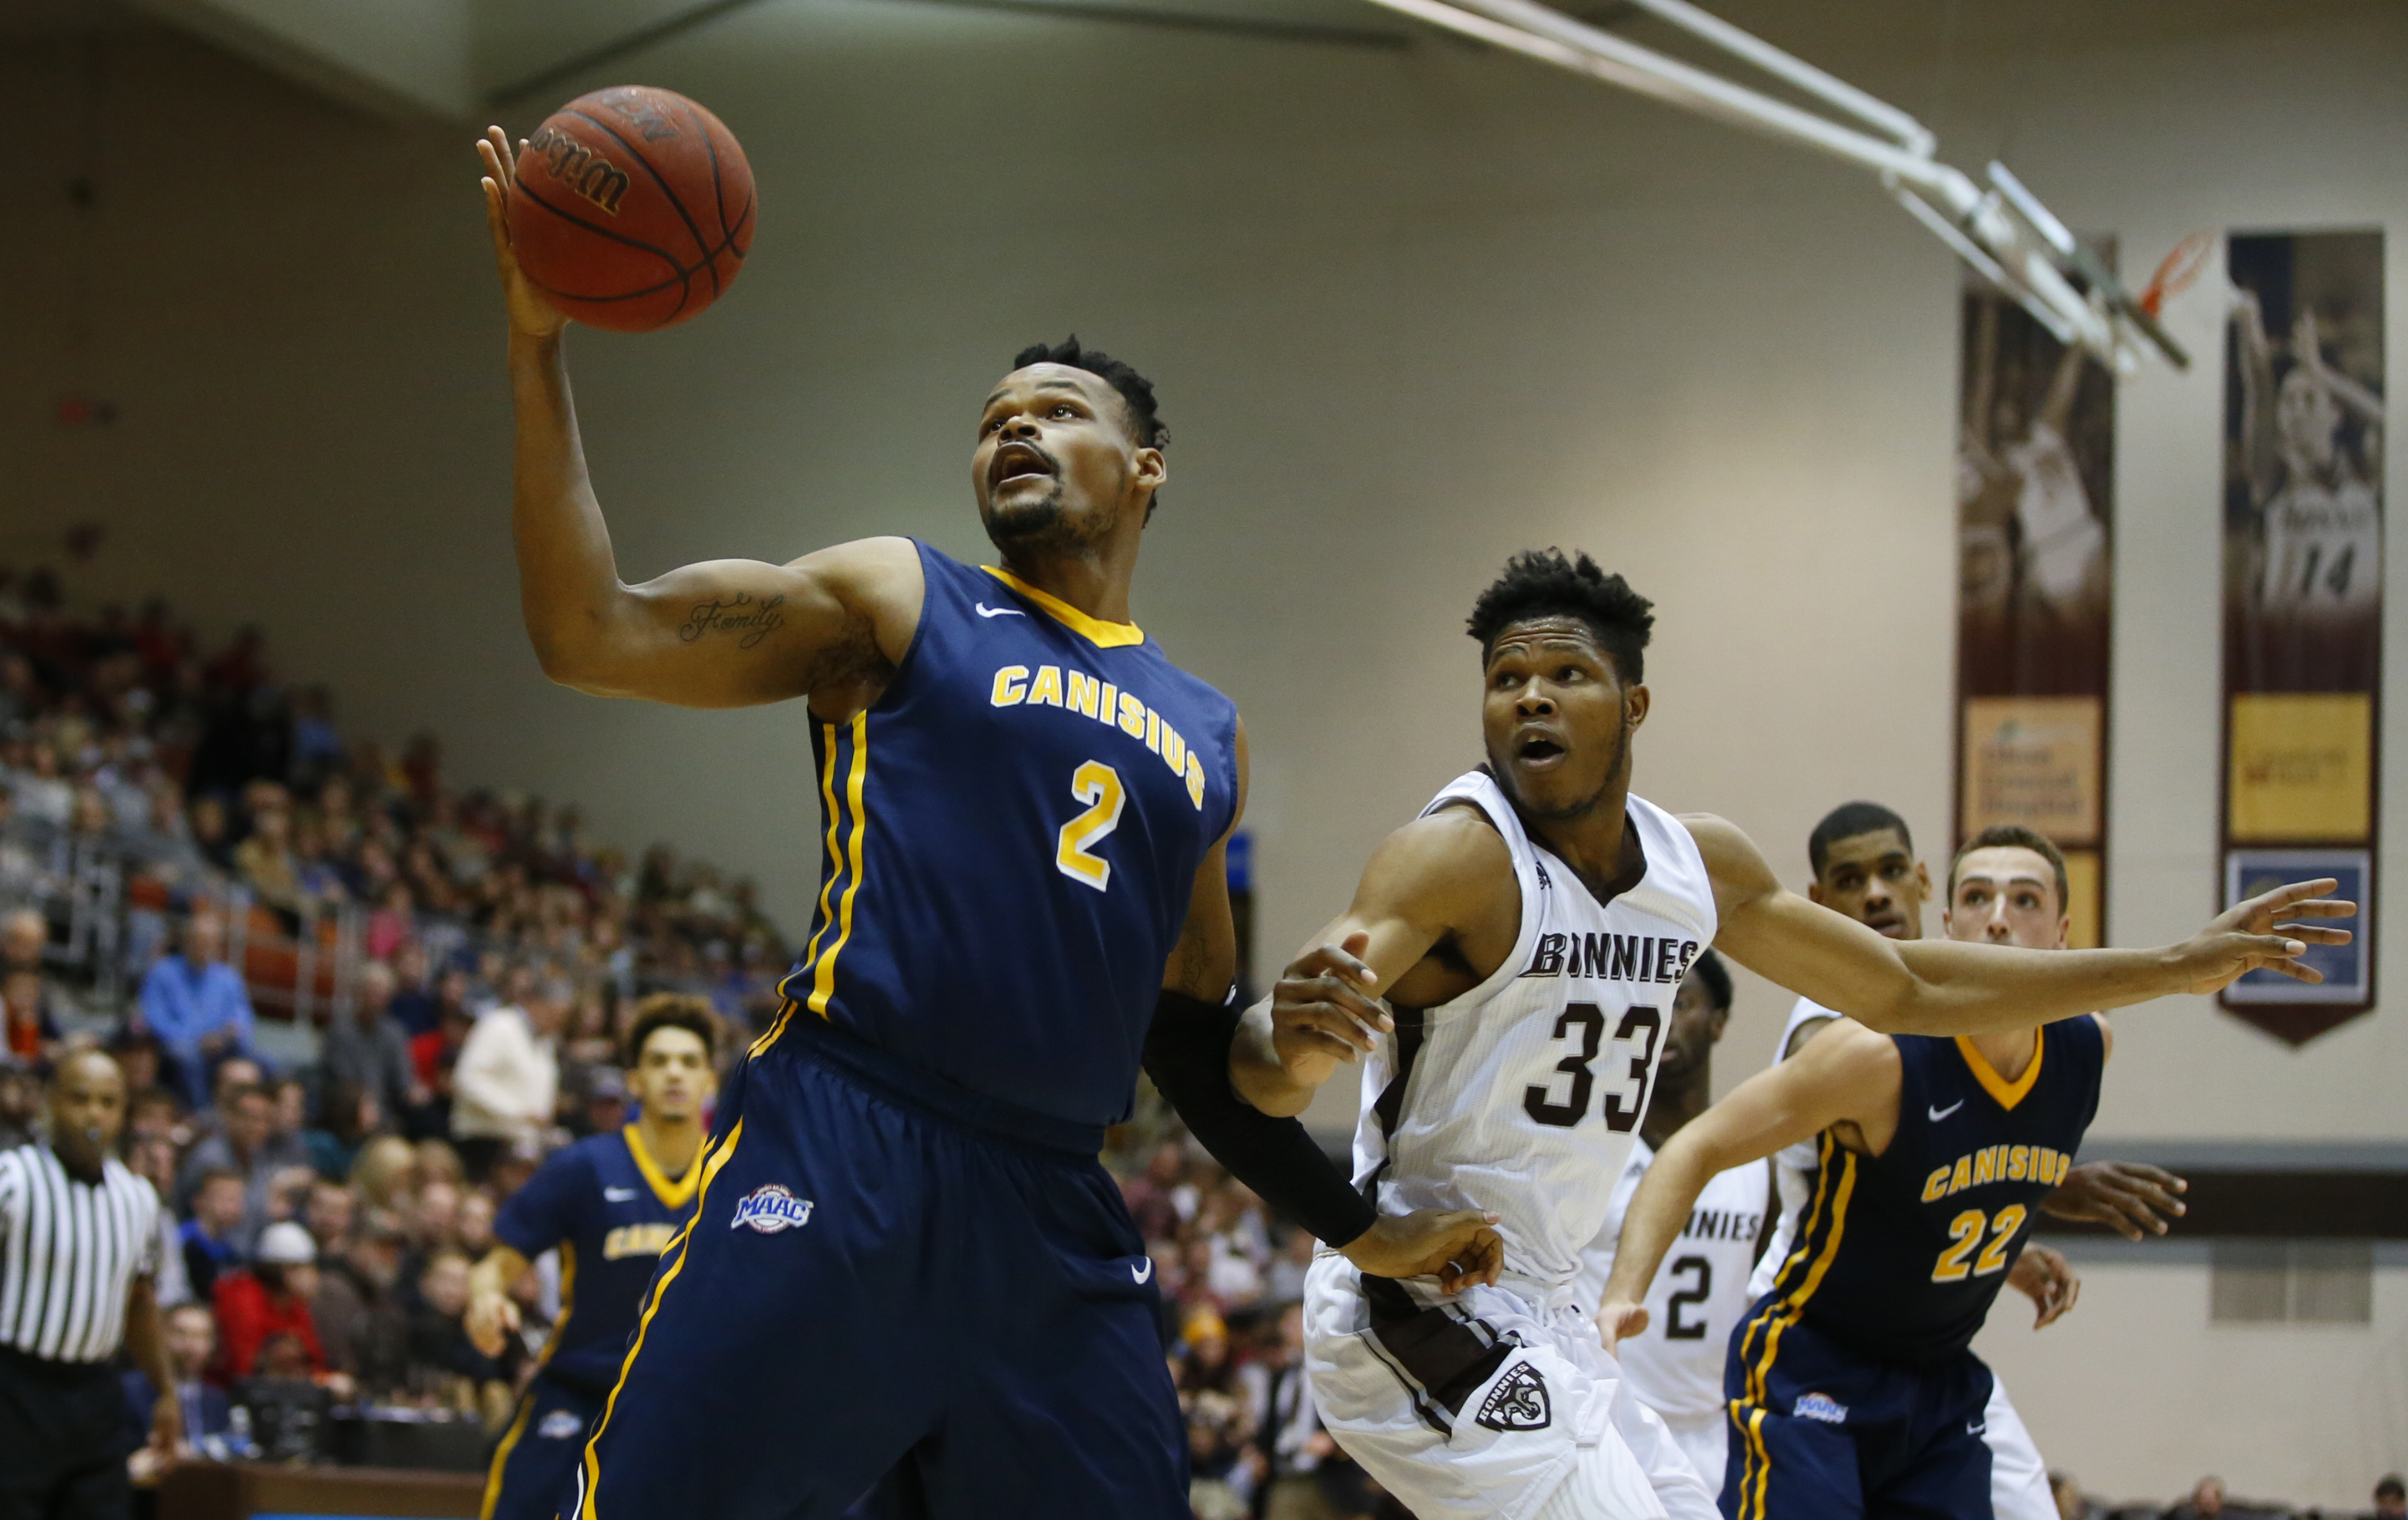 Jermain Crumpton from Canisius grabs the ball from St. Bonaventure's Josh Ayeni during second half action at the Reilly Center on Thursday, Dec. 22, 2016. (Harry Scull Jr./Buffalo News)